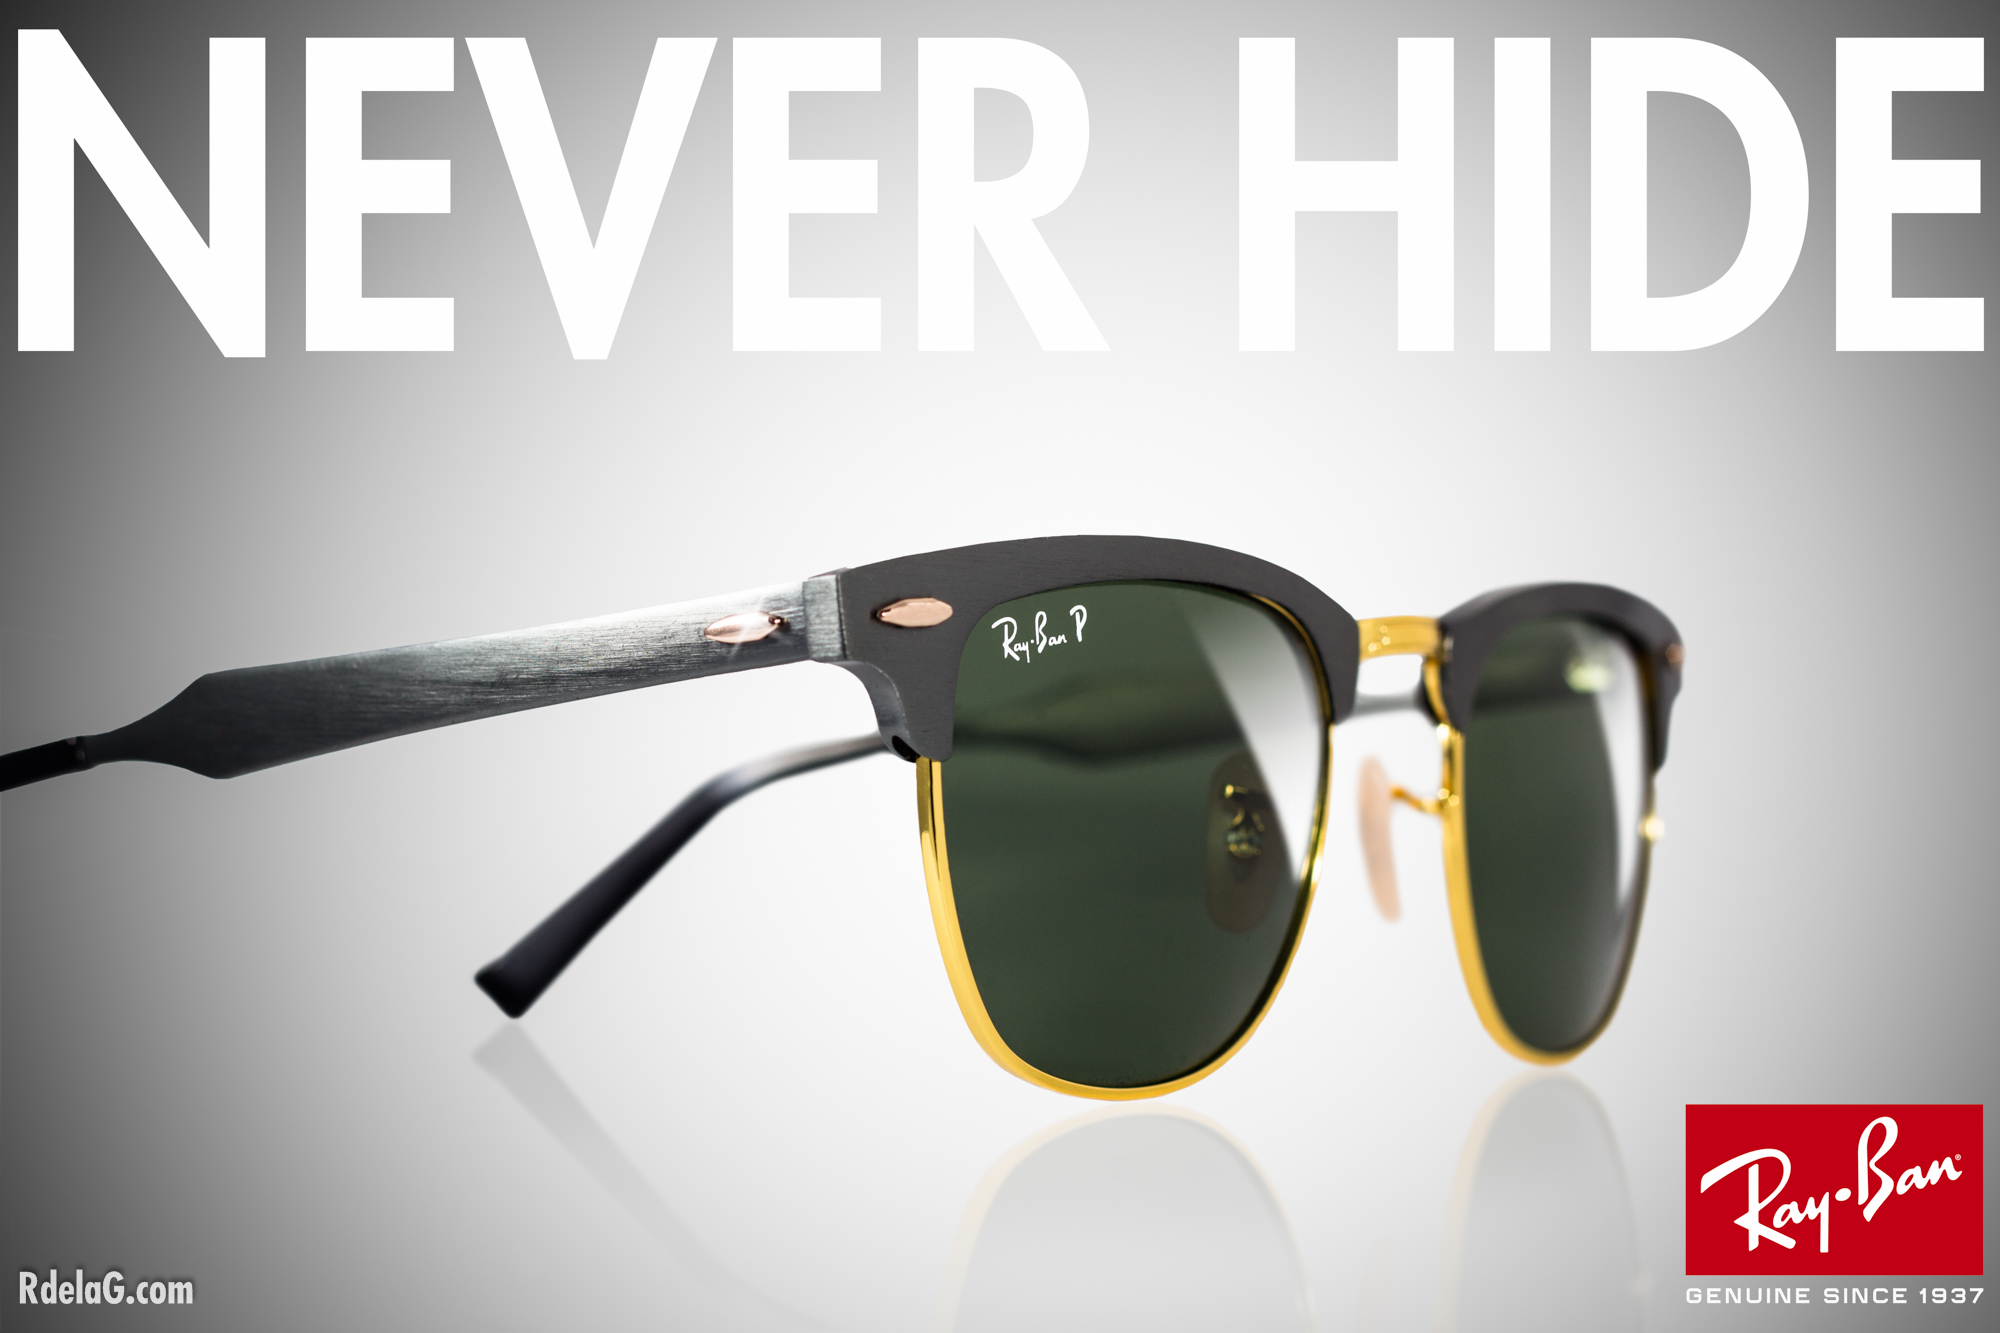 Ray-Ban eyewear from Goldenvision Optometrists